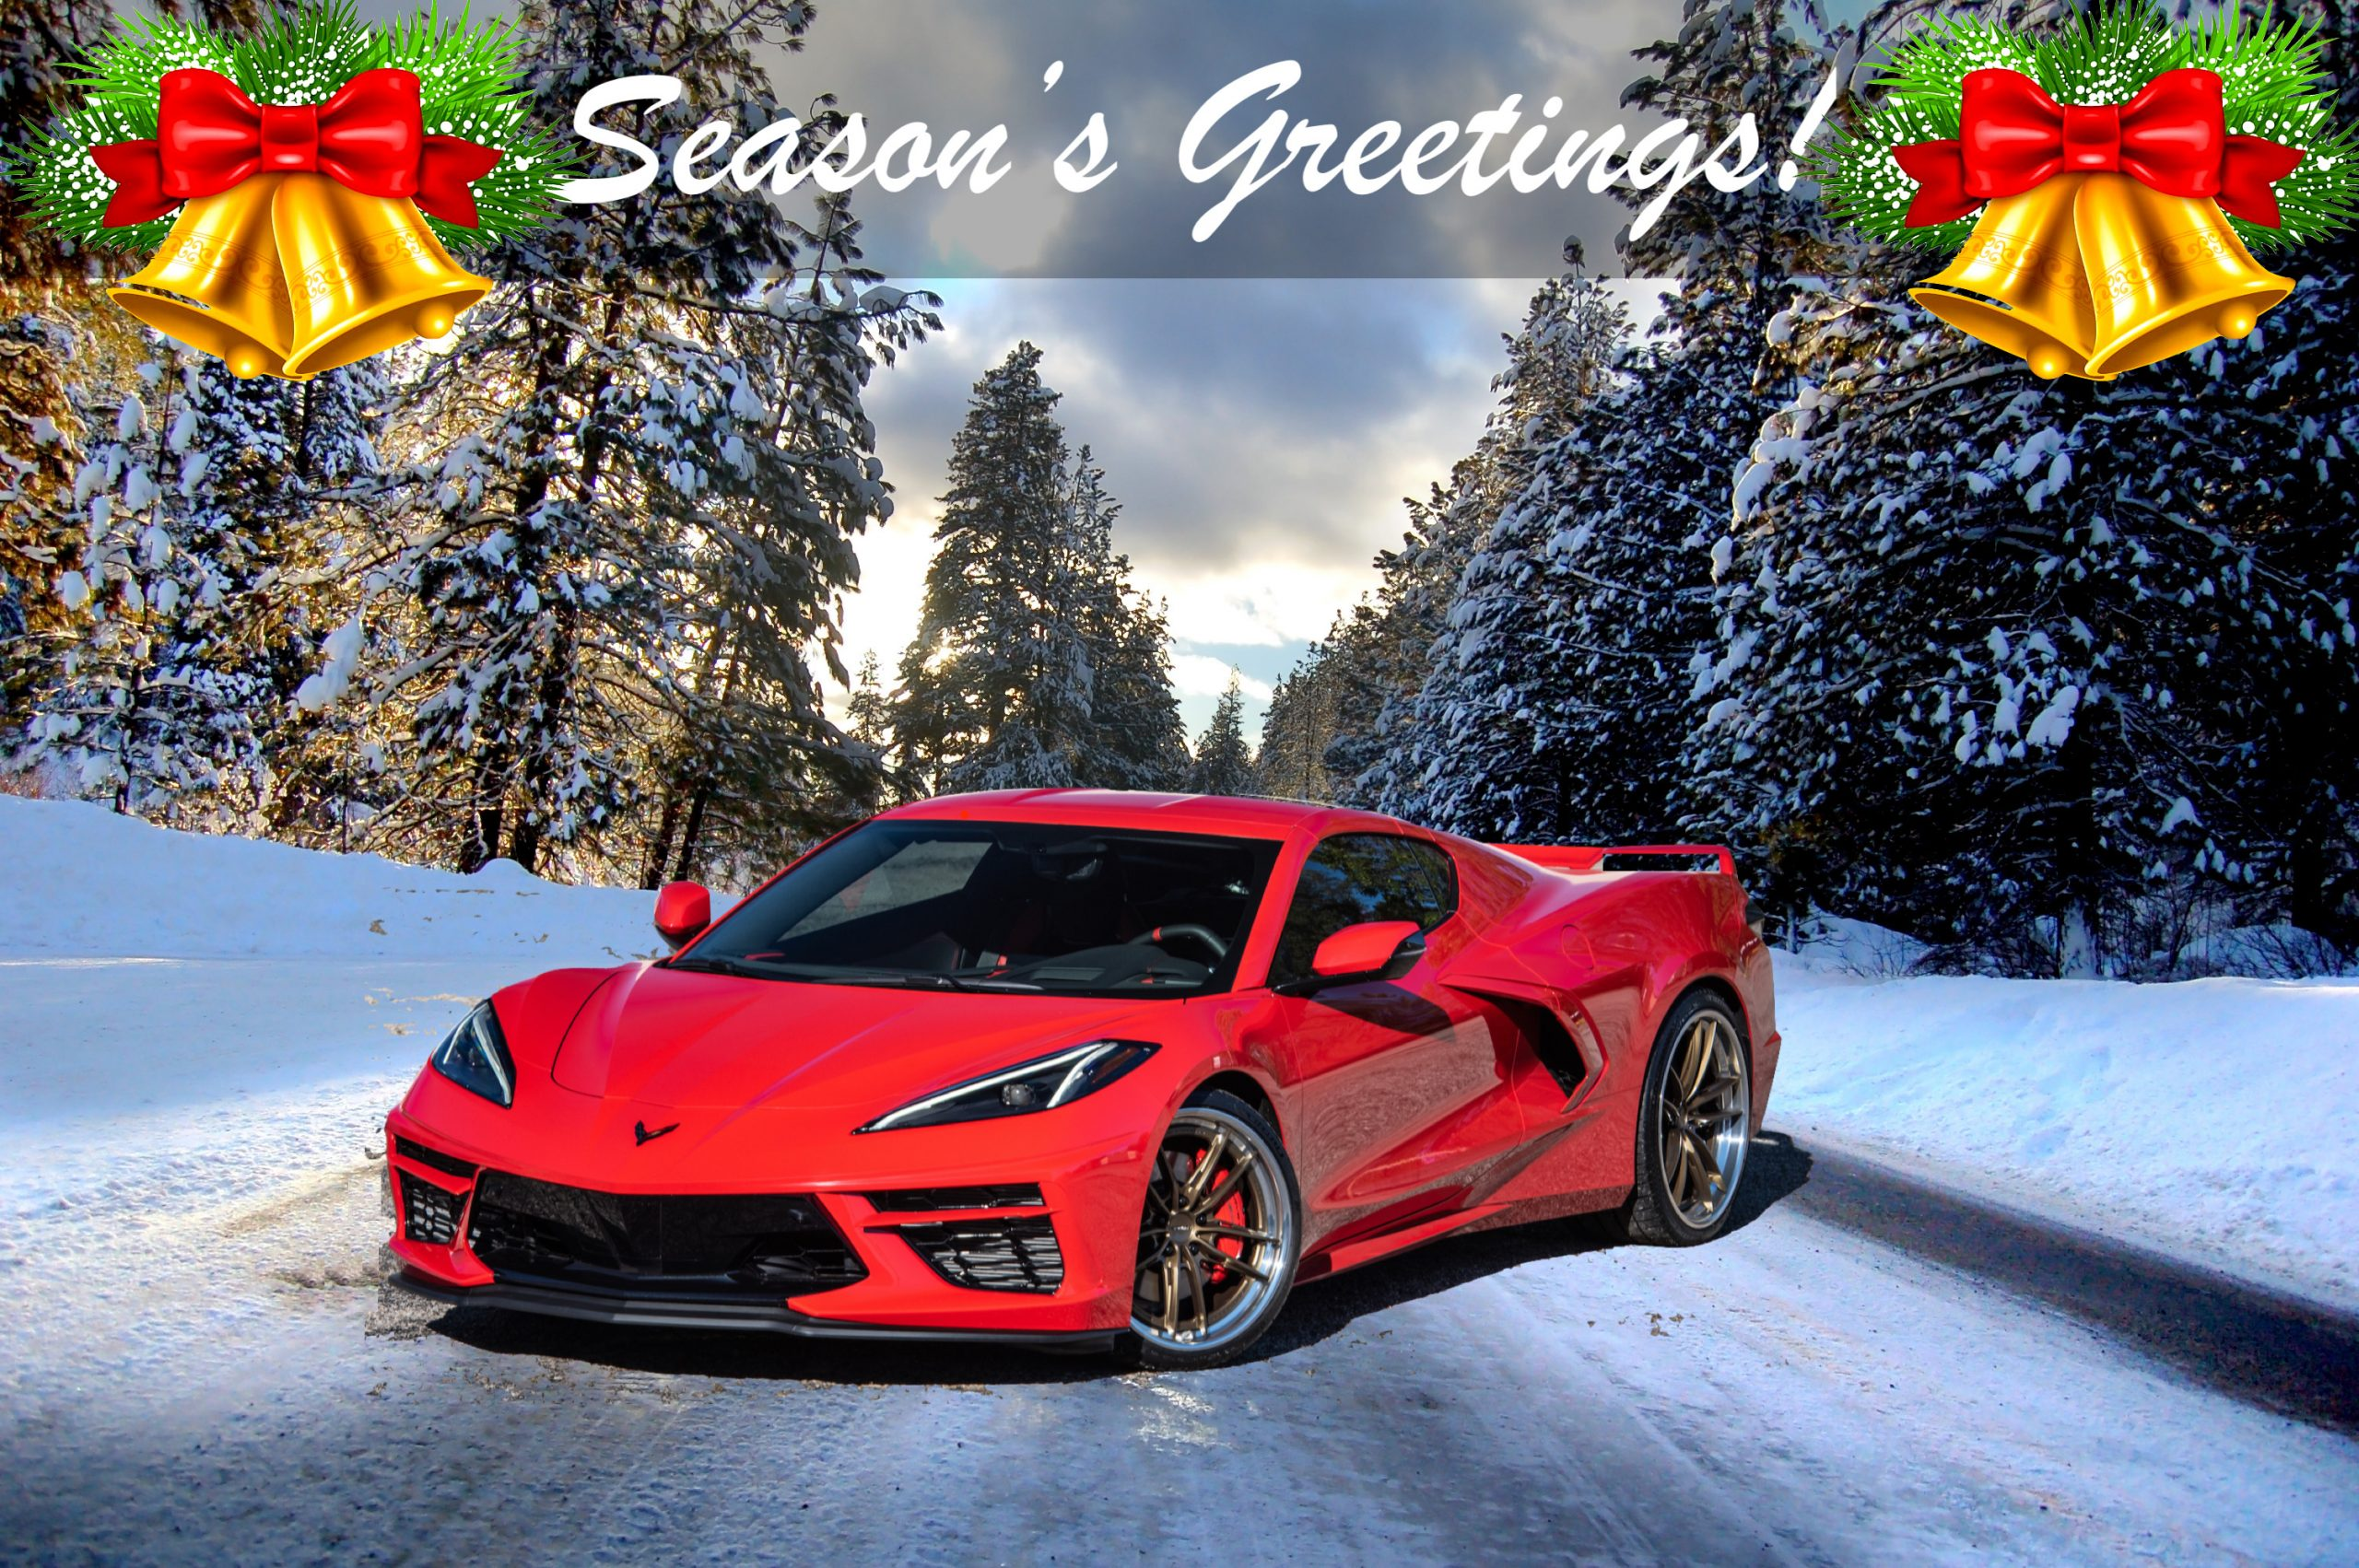 Season's Greetings from Forgeline